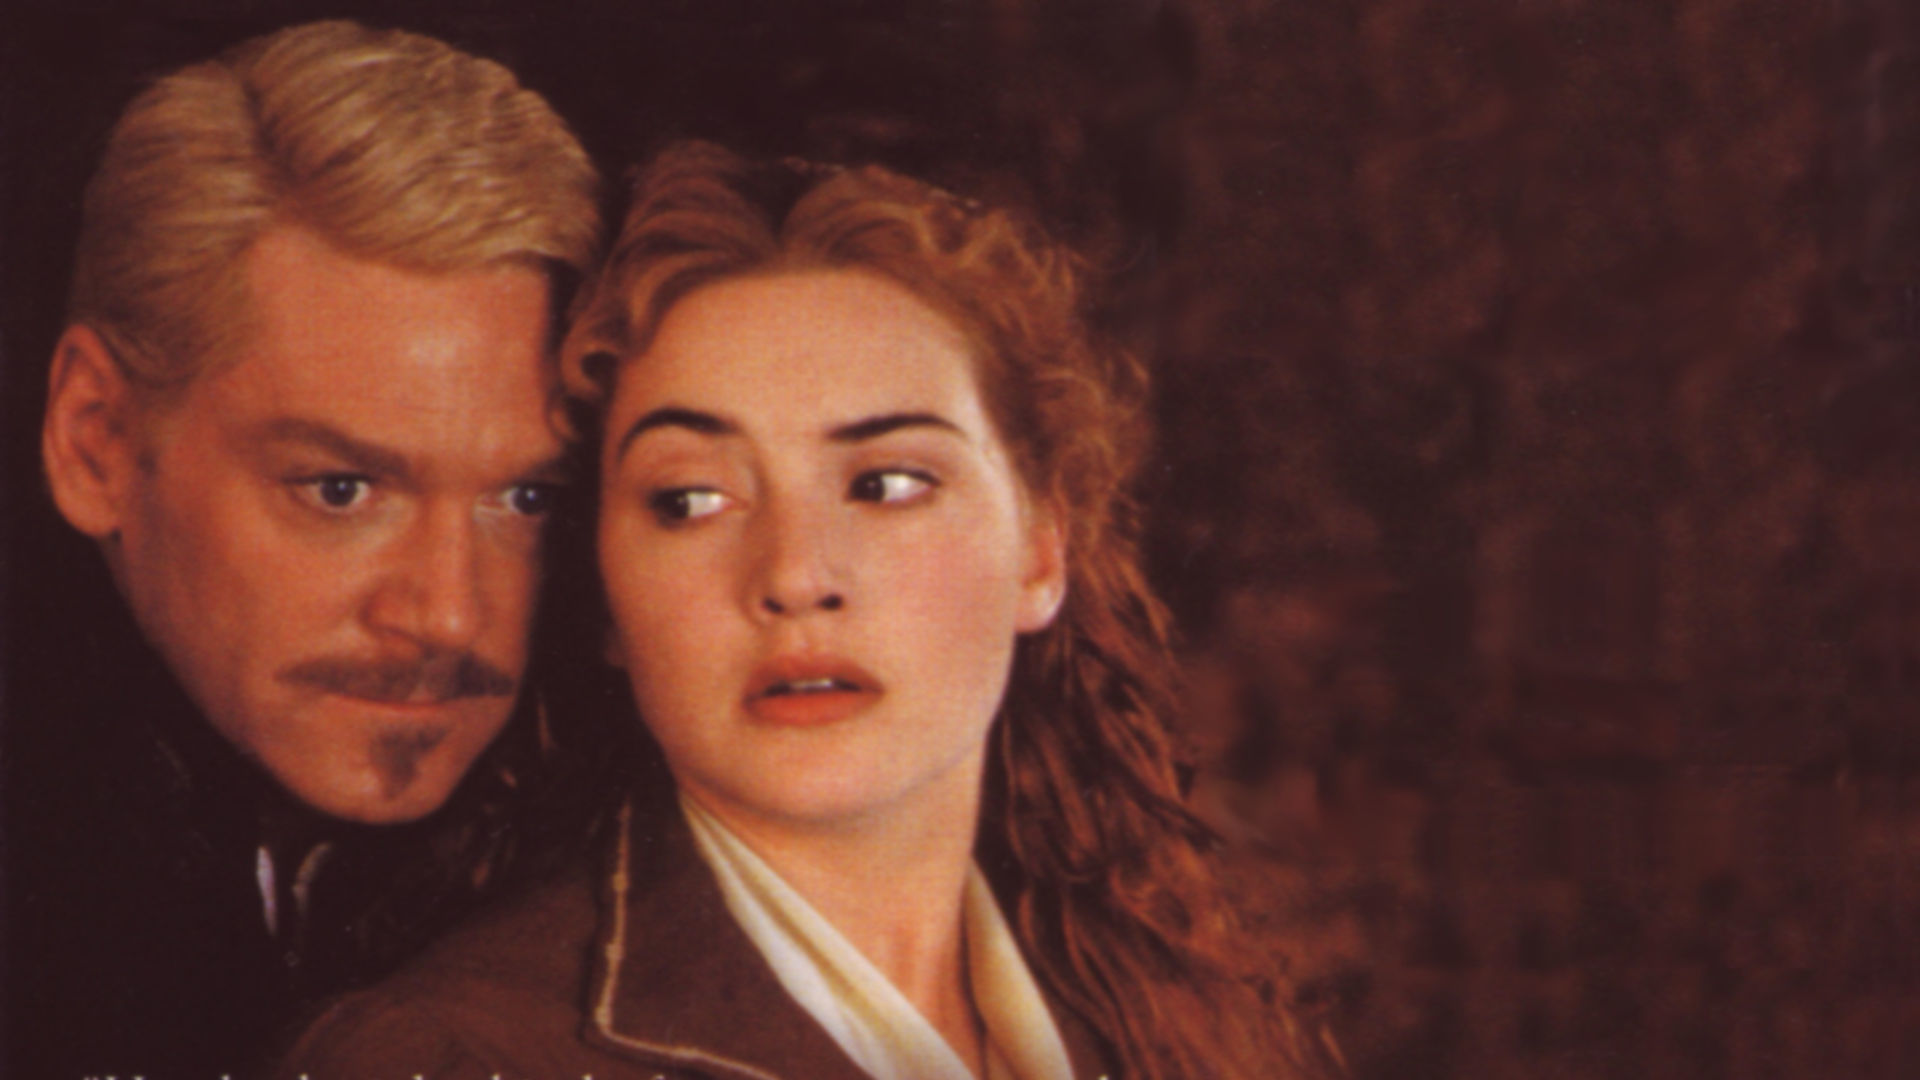 hamlet s commentary Throughout, hamlet keeps up a running commentary on the characters and their actions, and continues to tease ophelia with oblique sexual references.